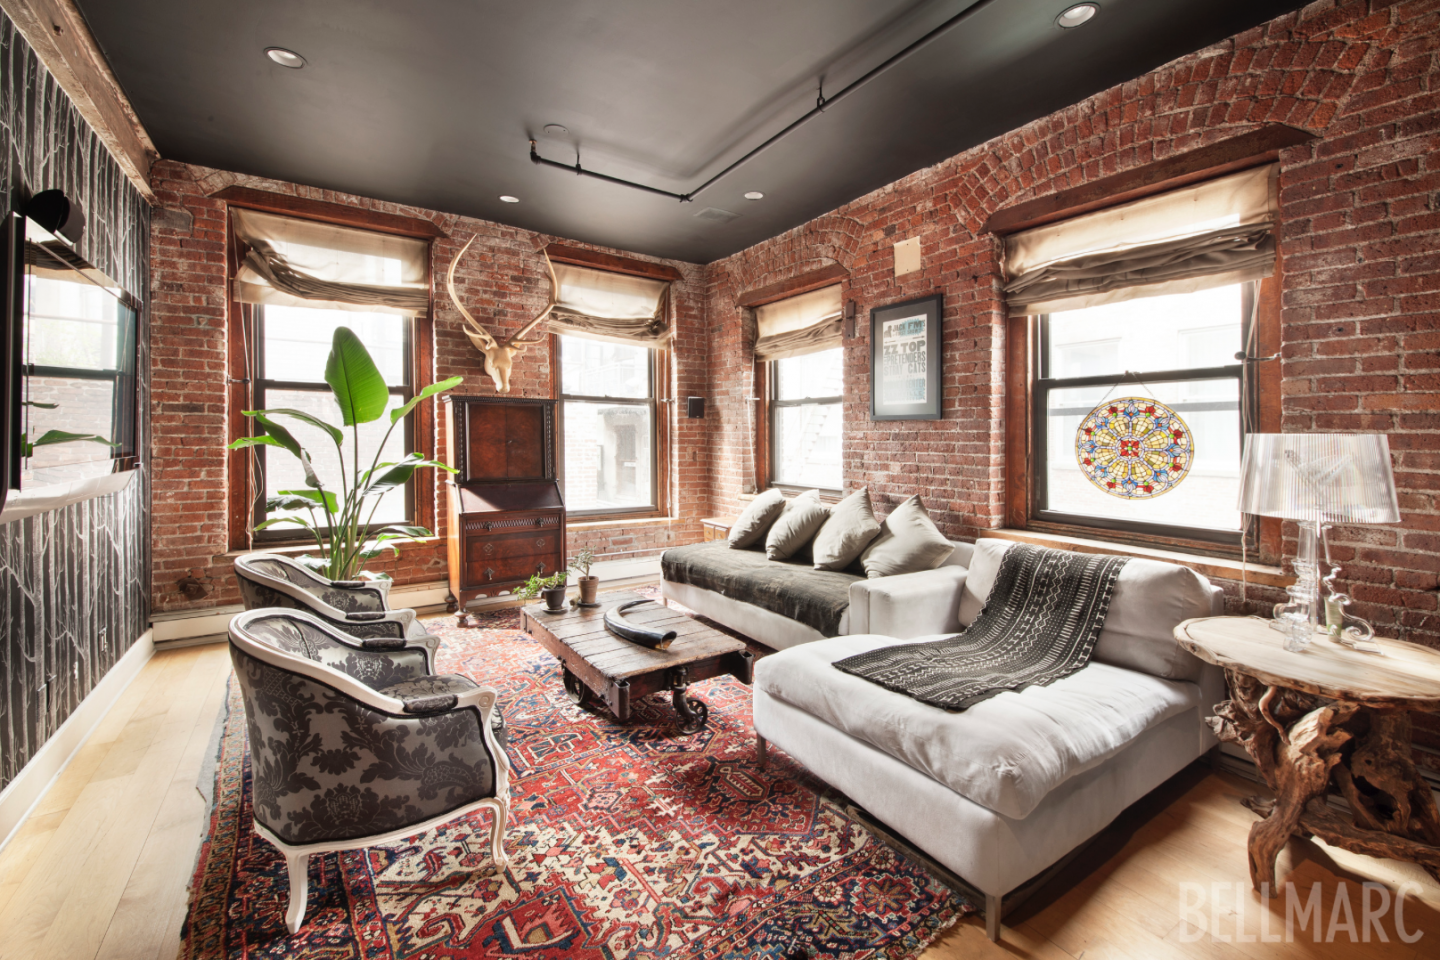 The full-floor loft at 182 Lafayette Street occupies a private boutique building in  the heart of SoHo.